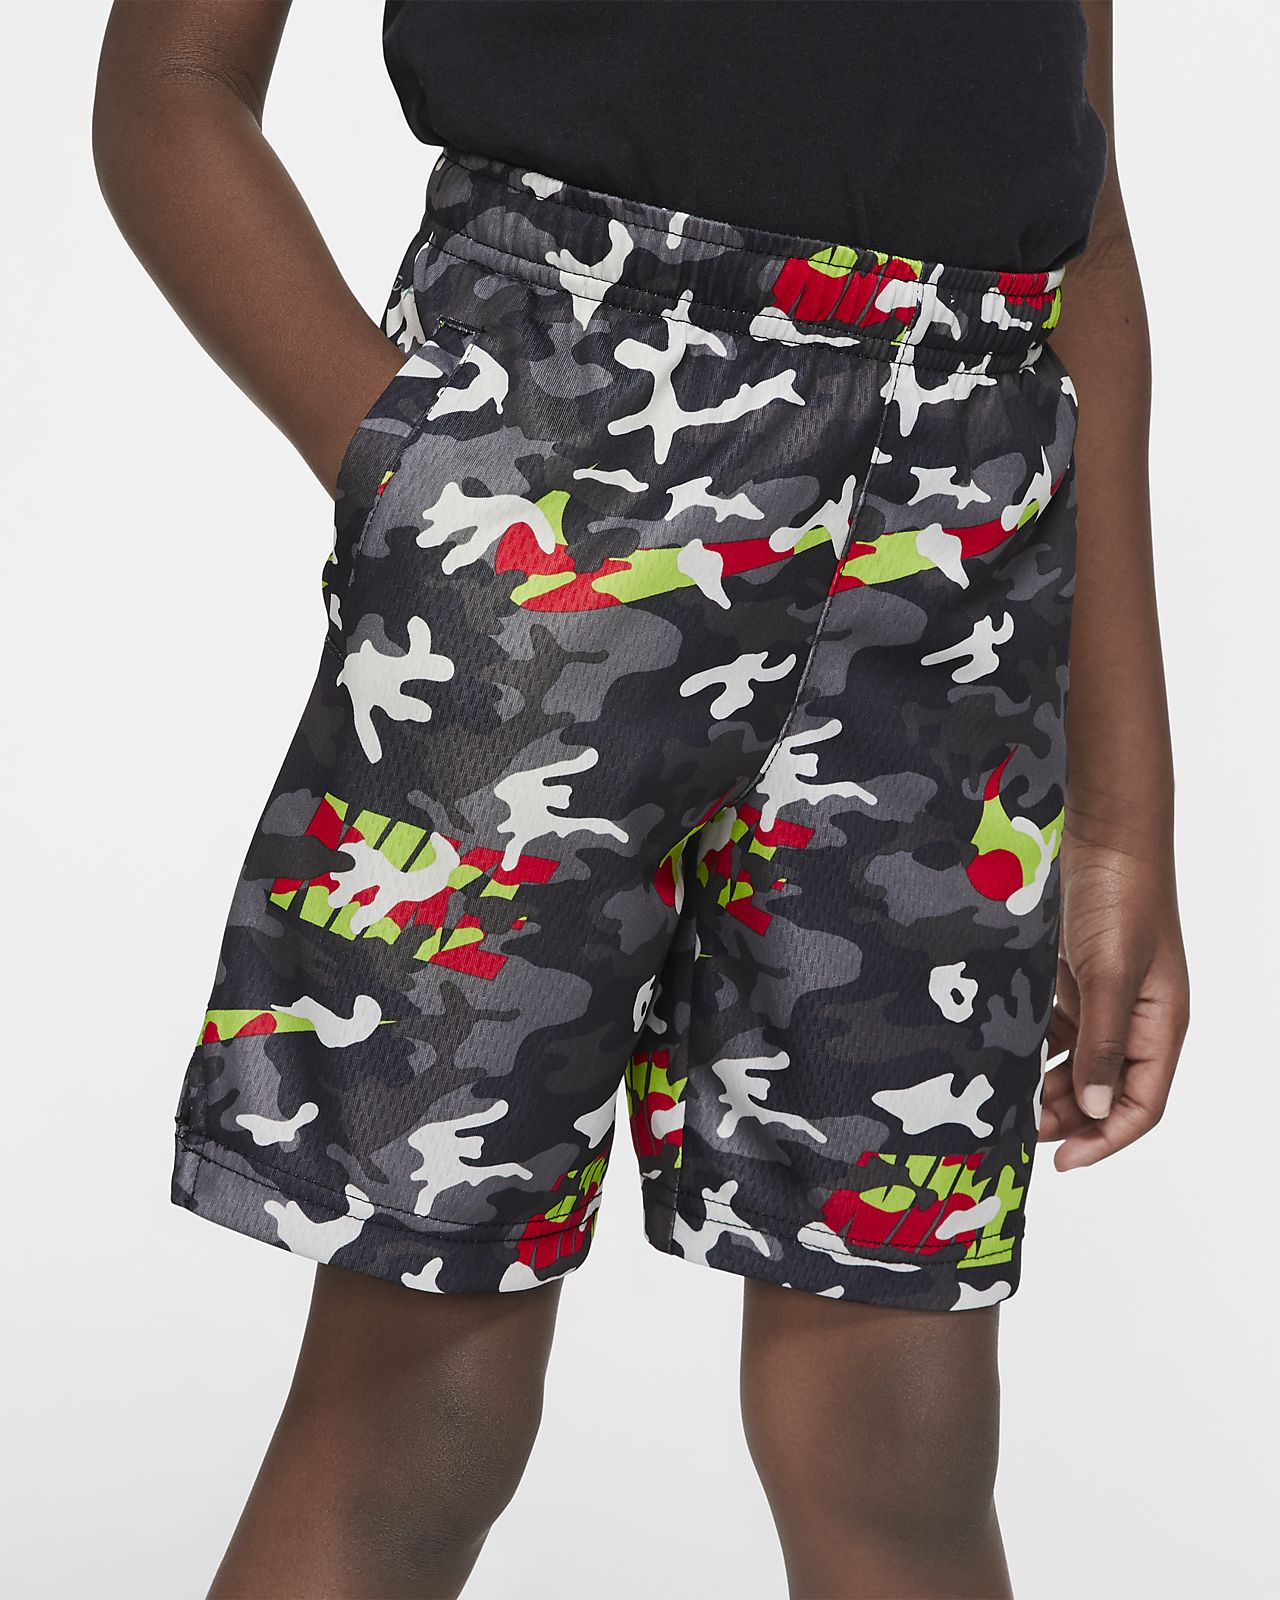 Nike Dri-FIT Little Kids' Shorts